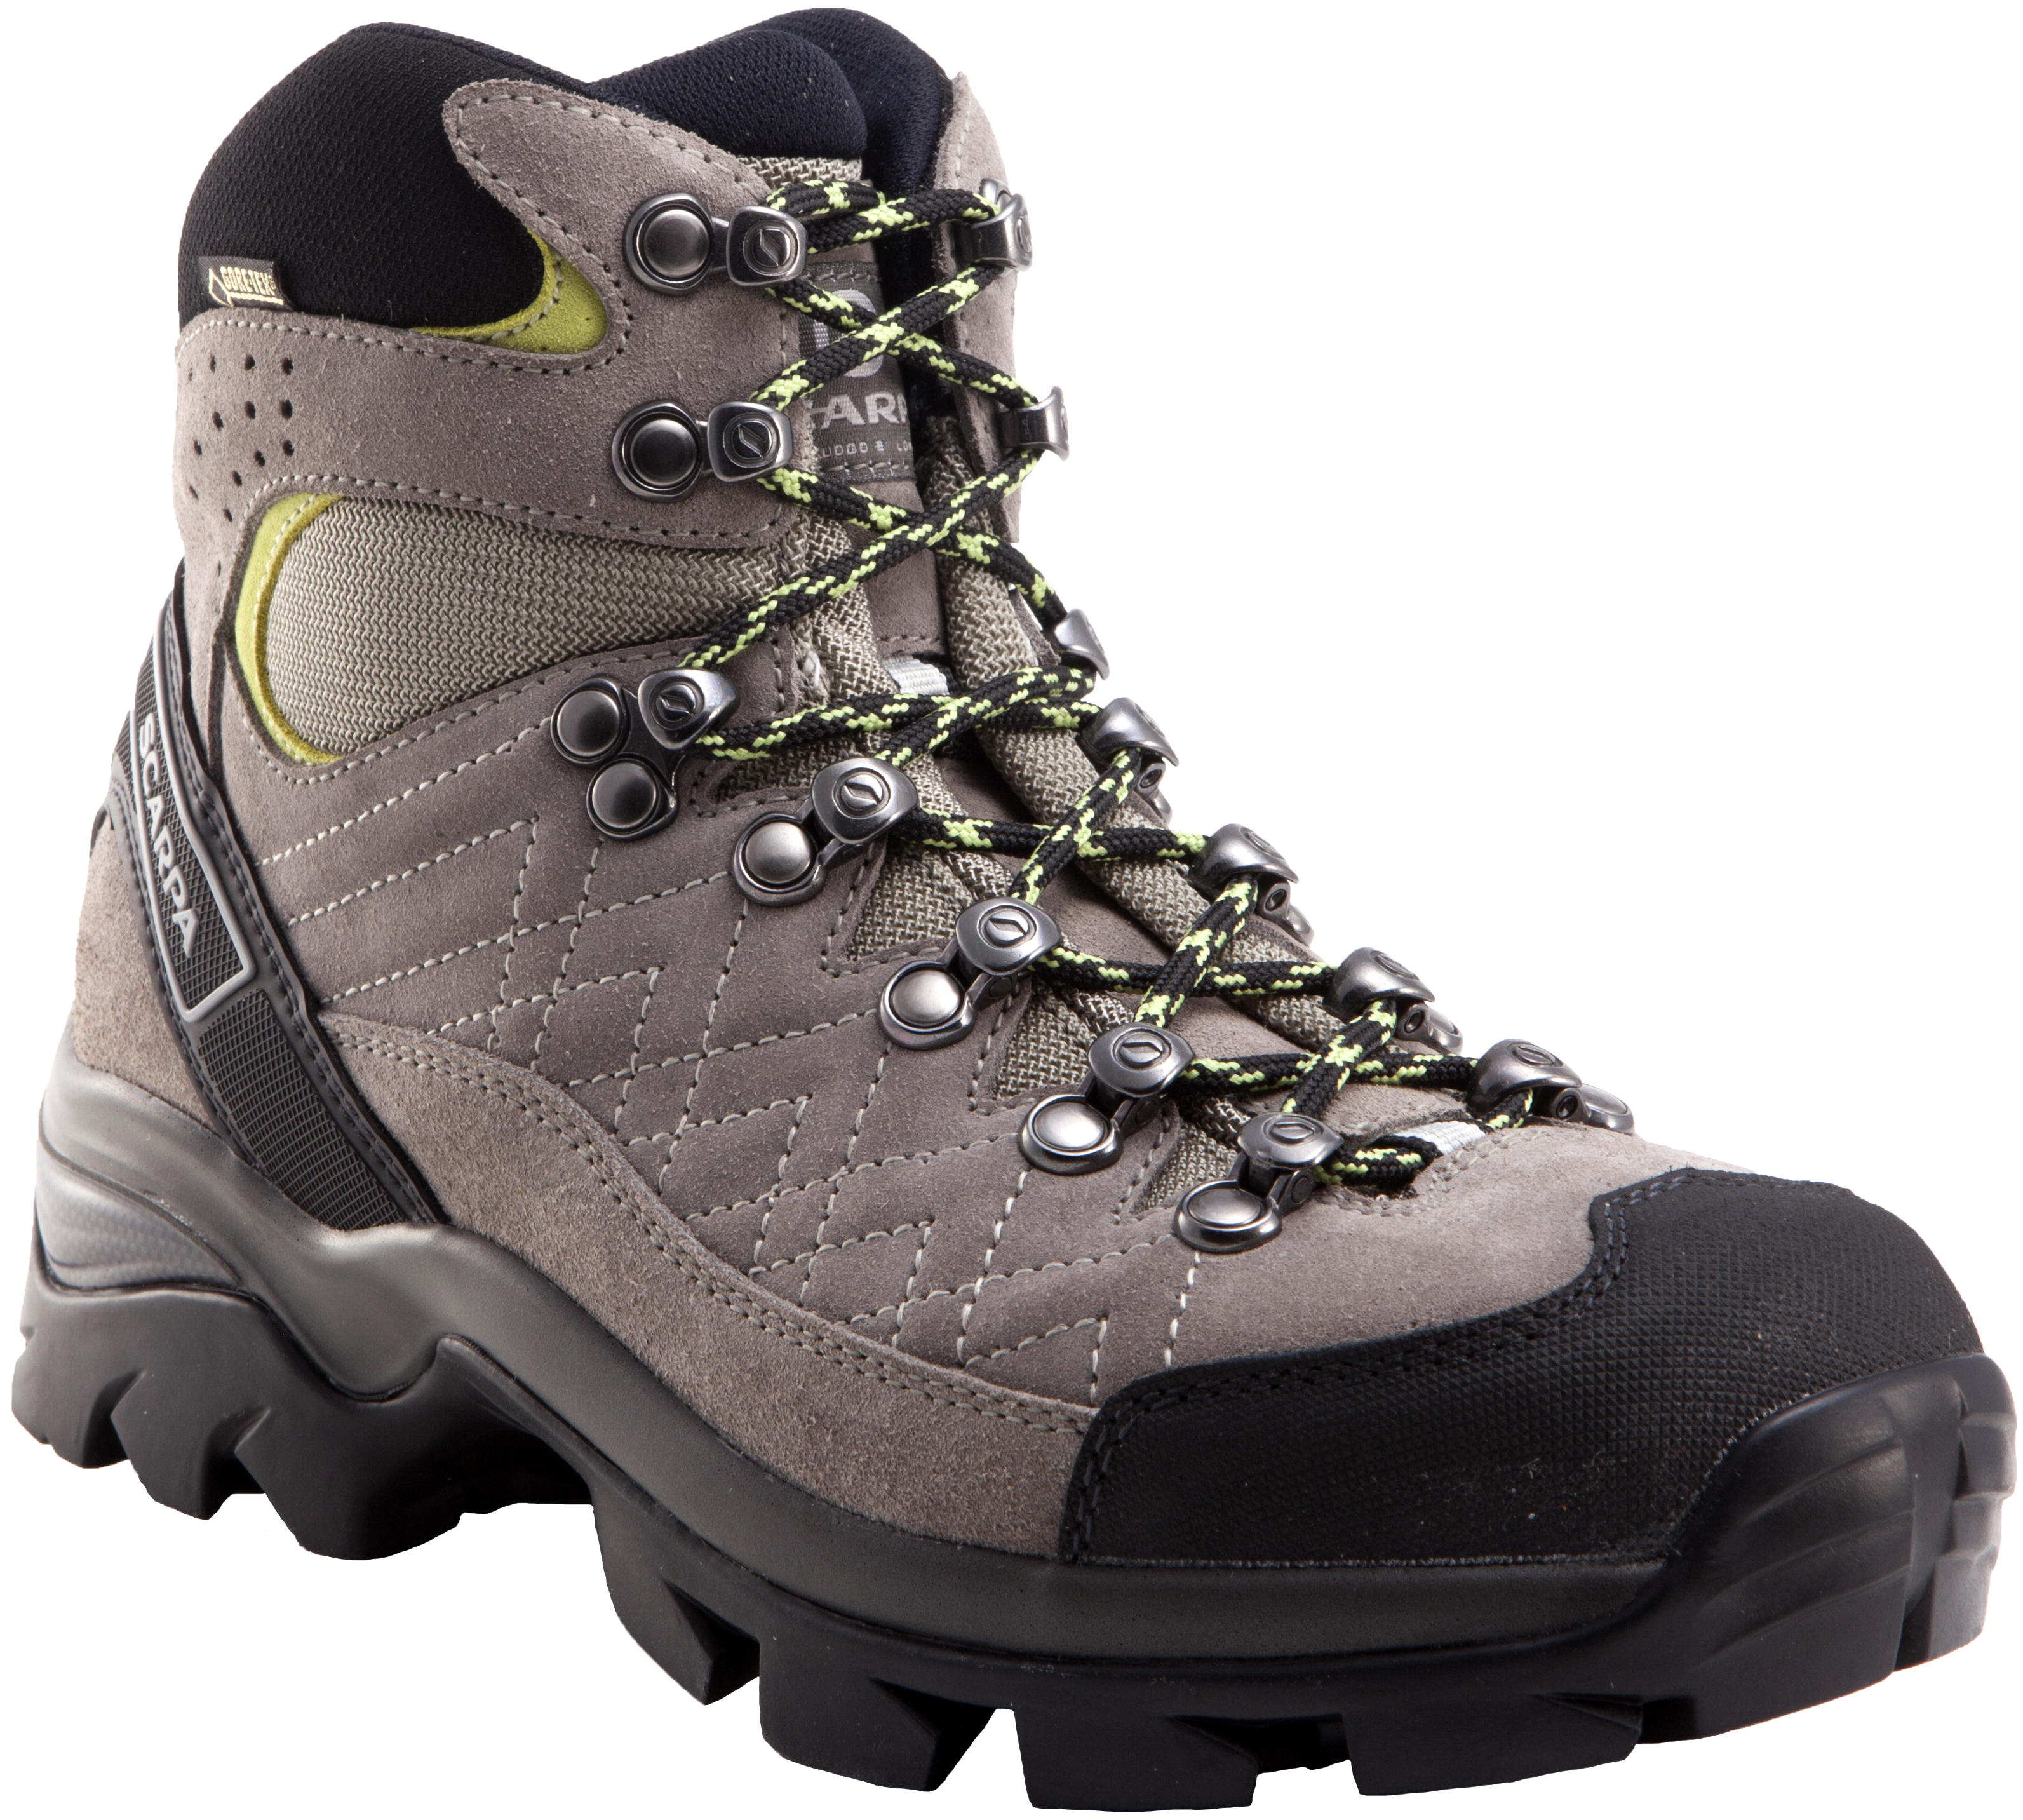 479883f2eac Scarpa Kailash GTX Day Hiking Boots - Women's